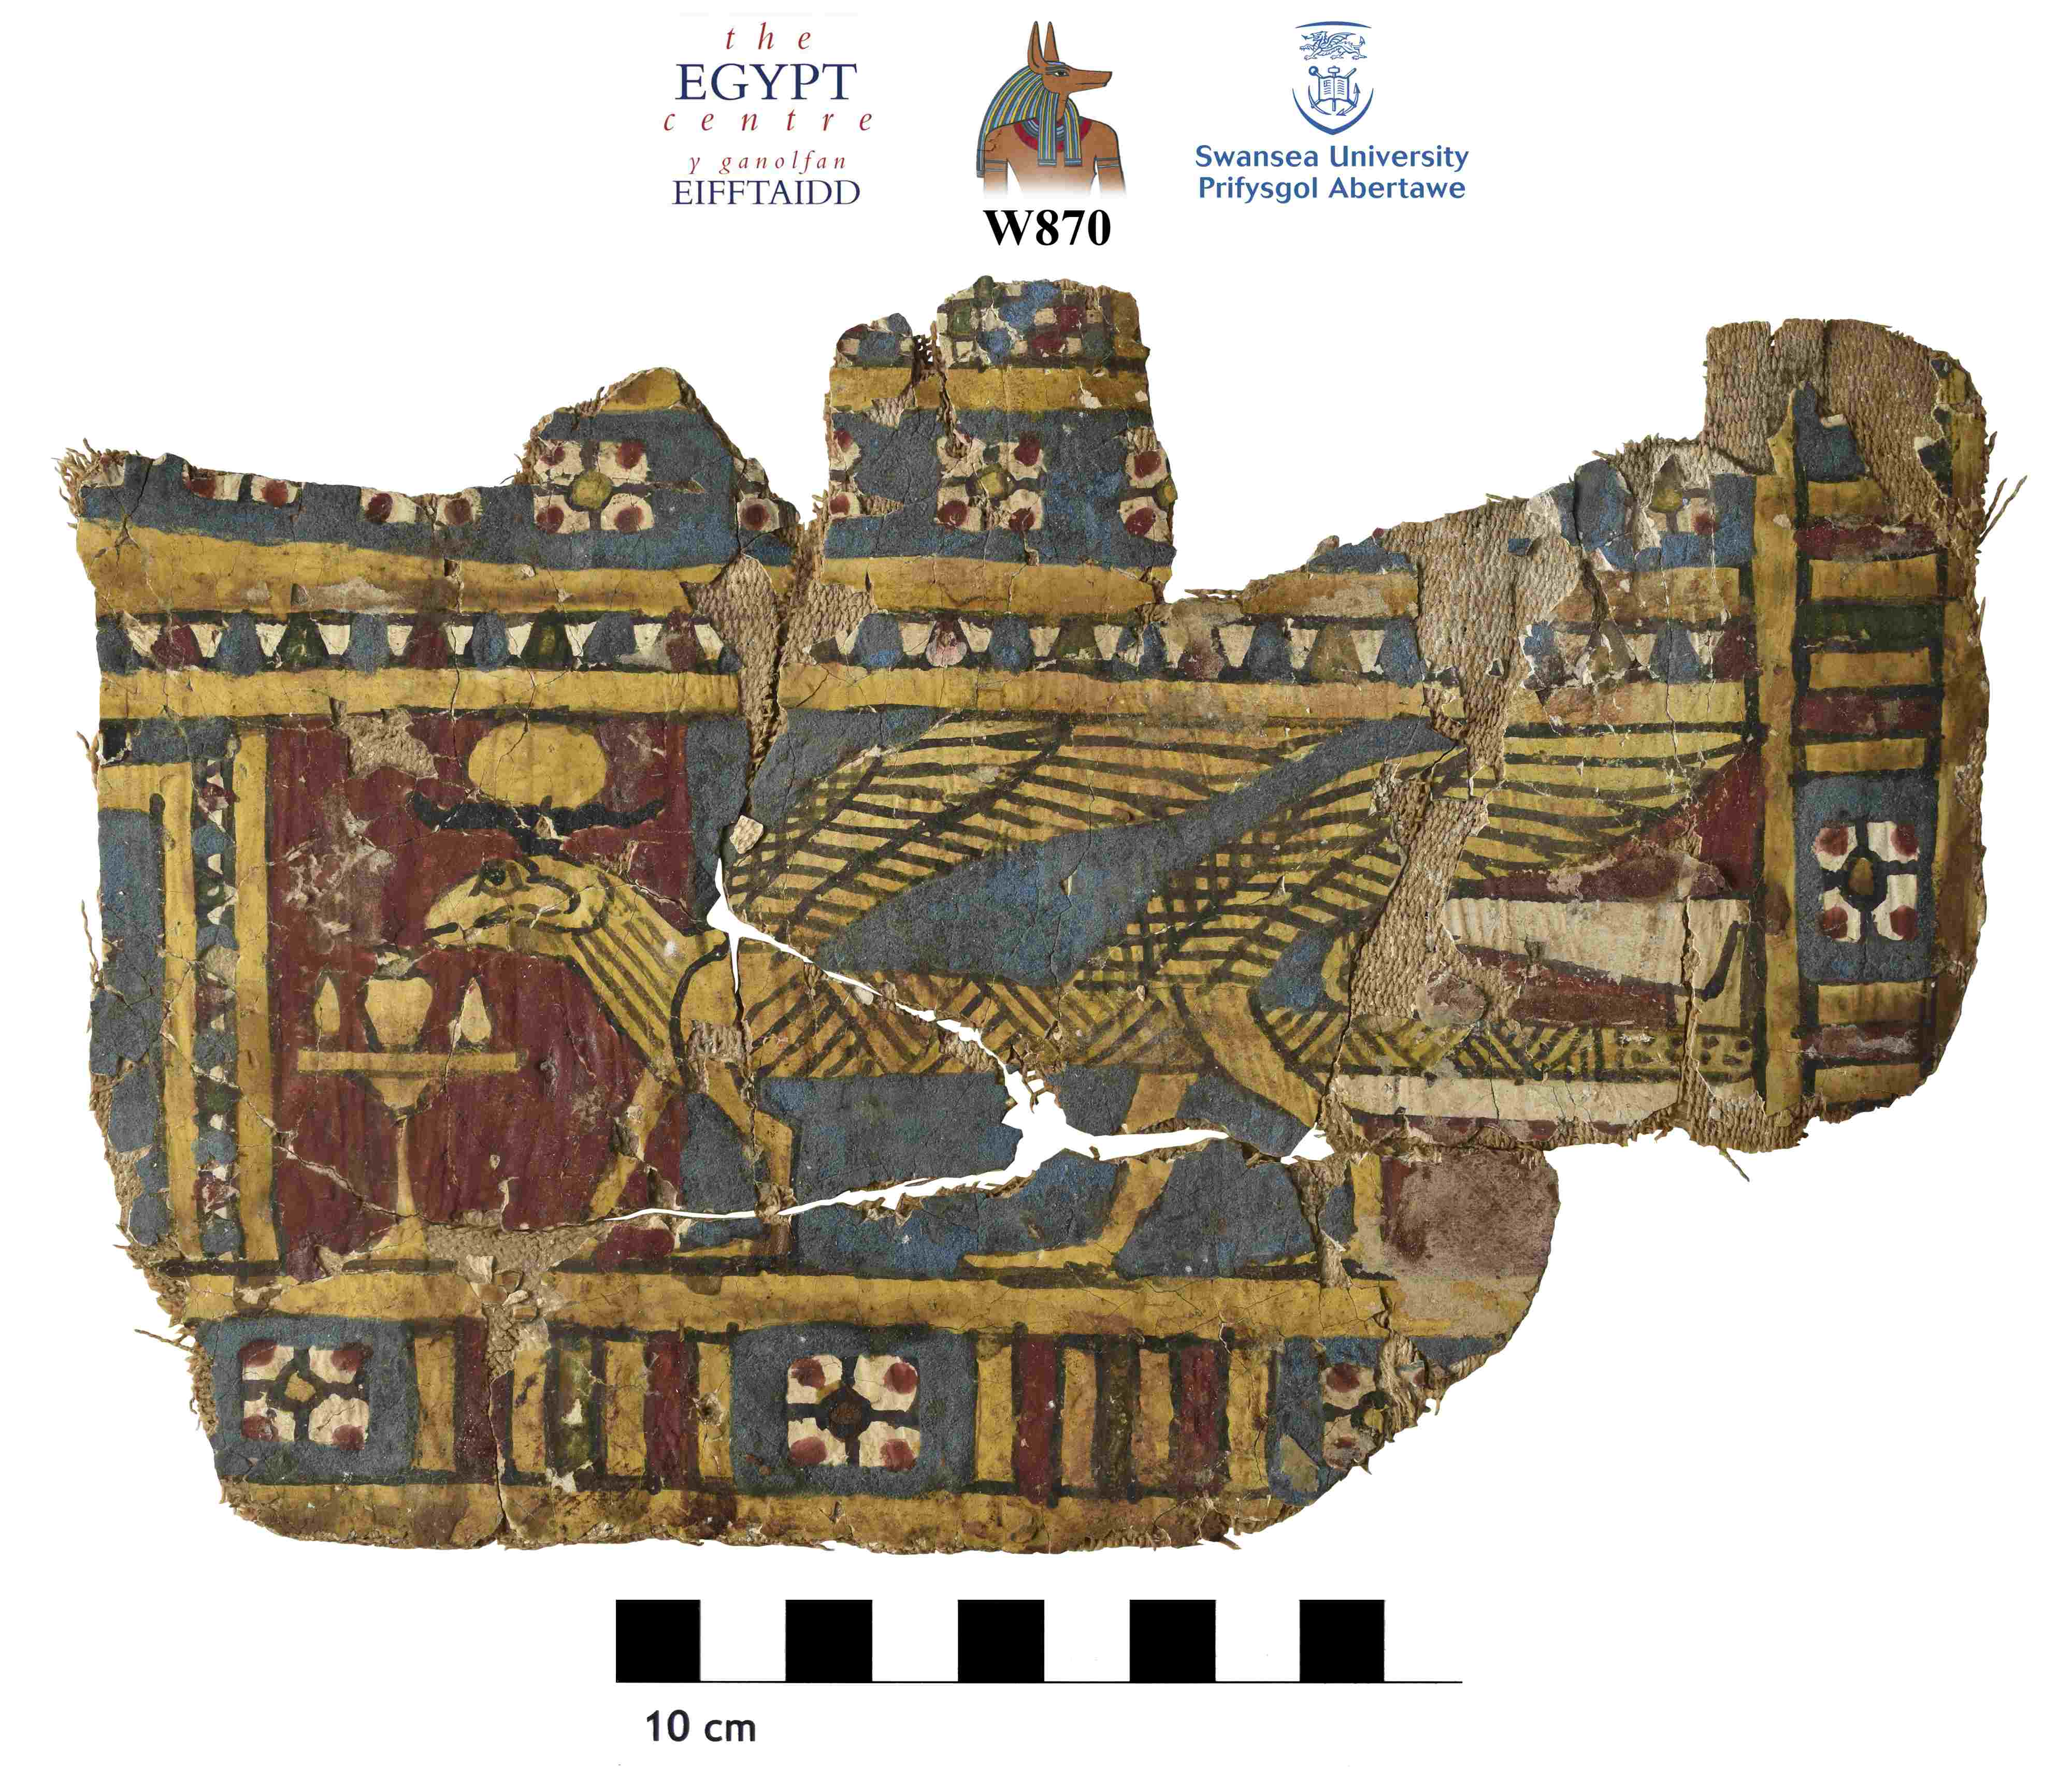 Image for: Fragment of cartonnage